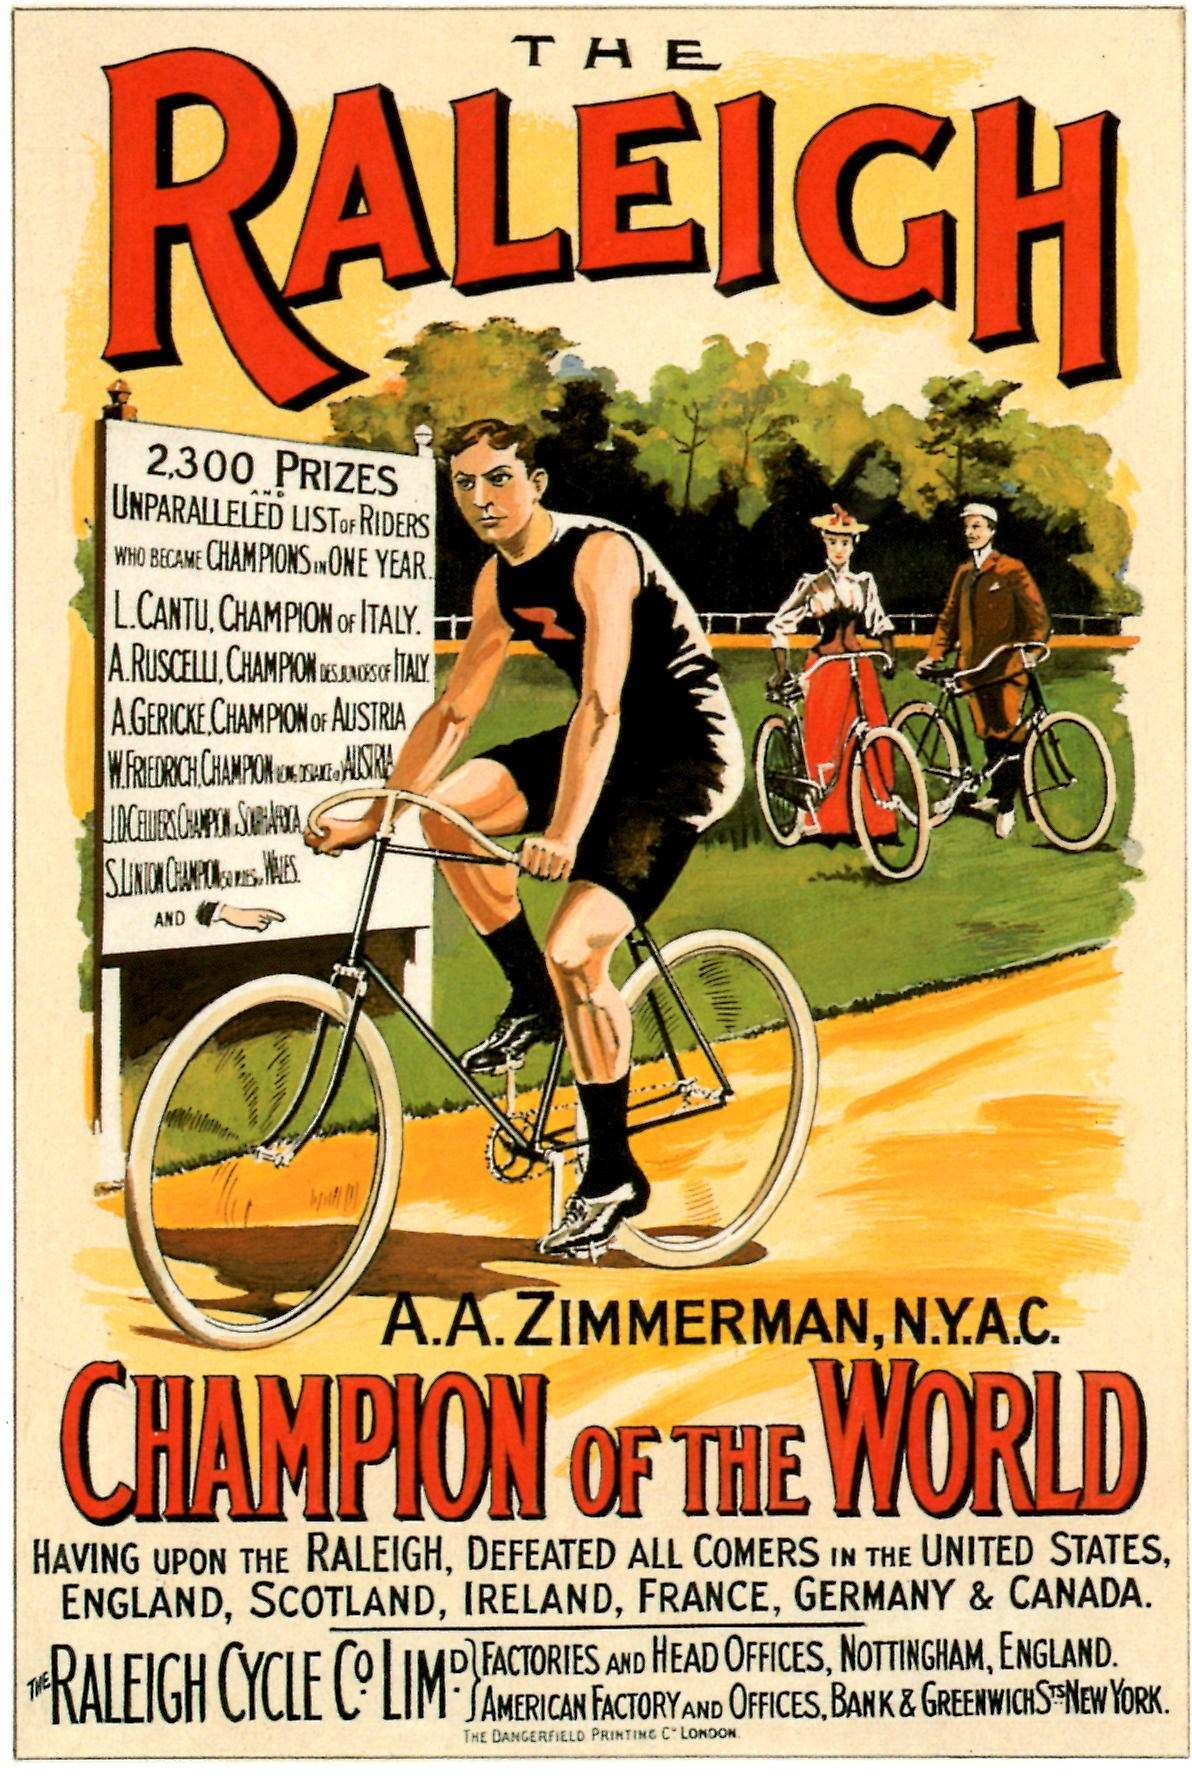 Arthur Augustus Zimmerman was champion of the world cyclist in 1893.